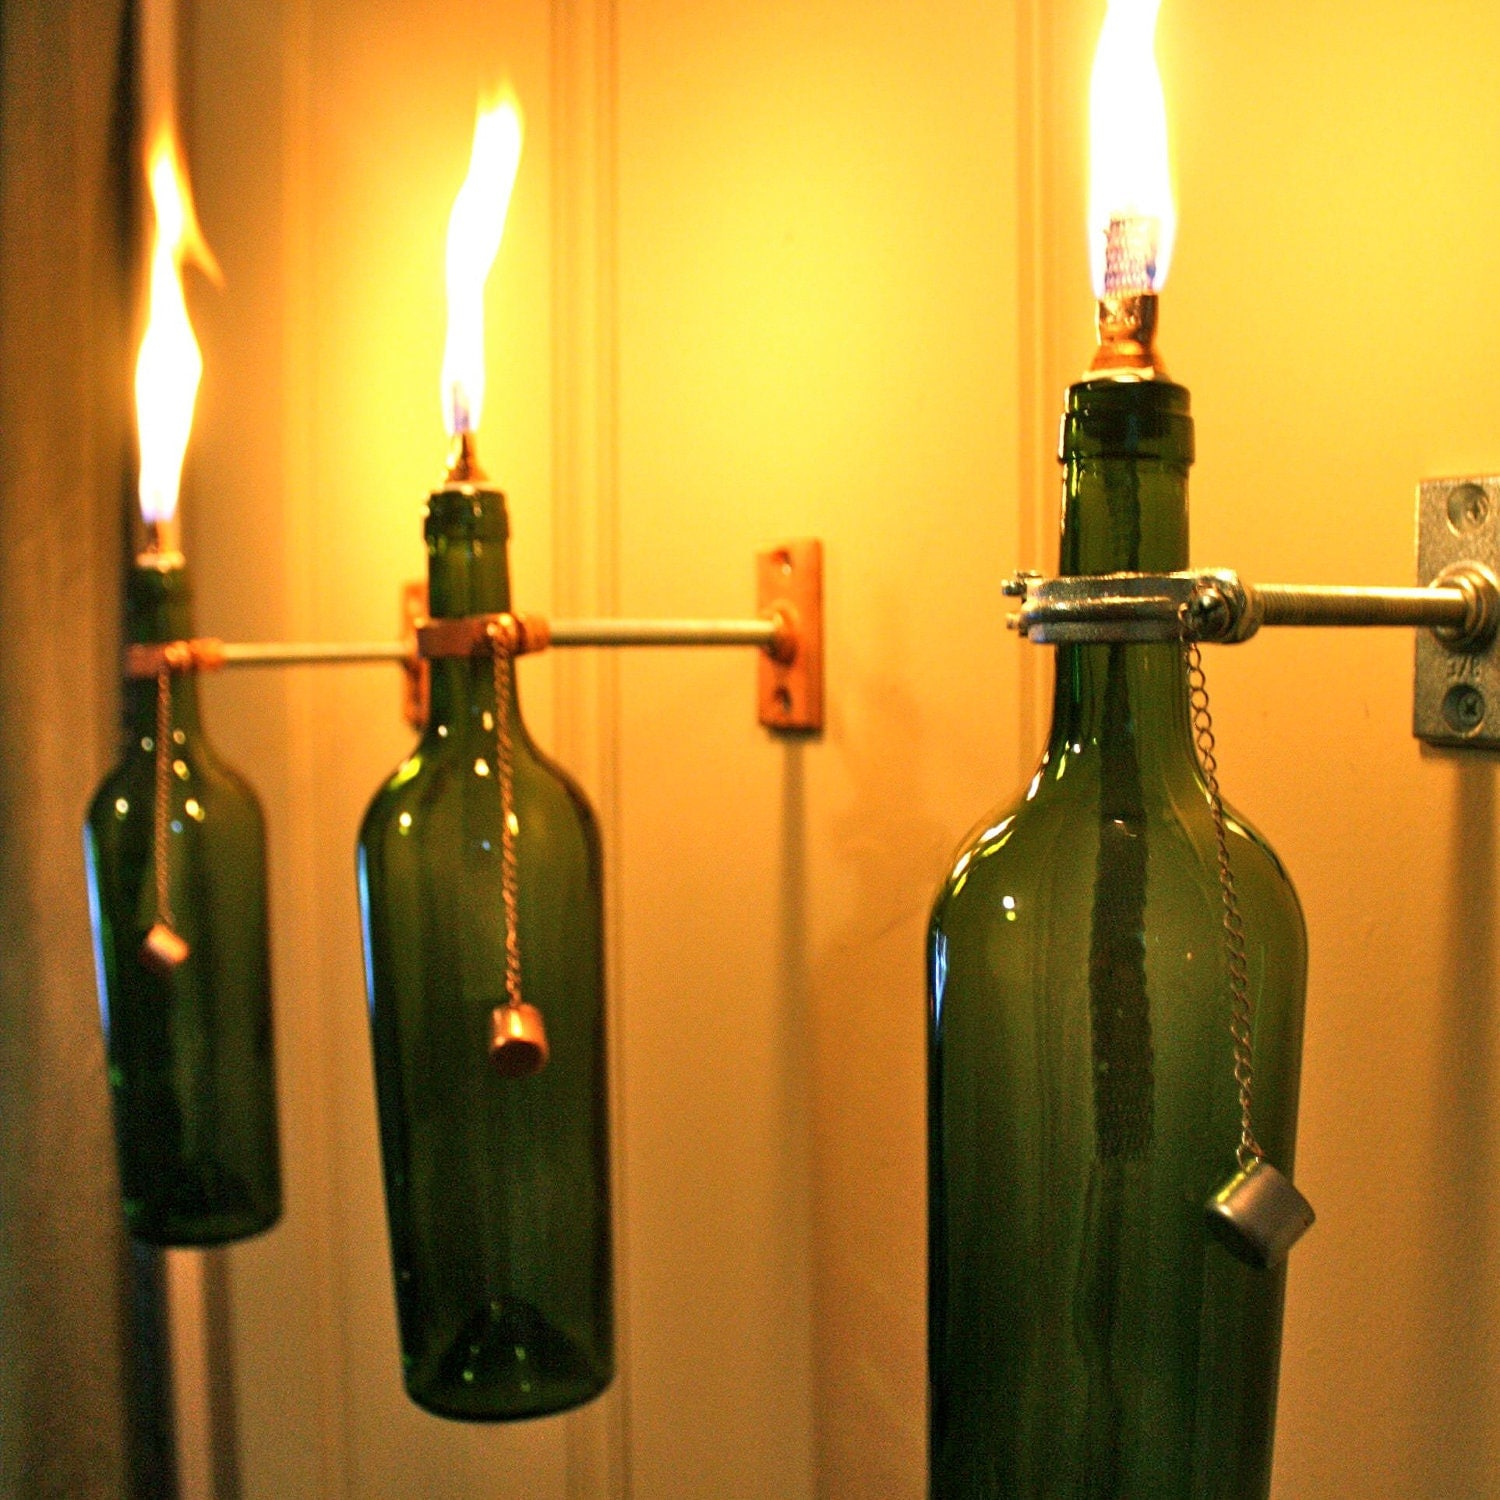 2 Wine Bottle Oil Lamps - INDOOR - Hanging Lantern - Copper